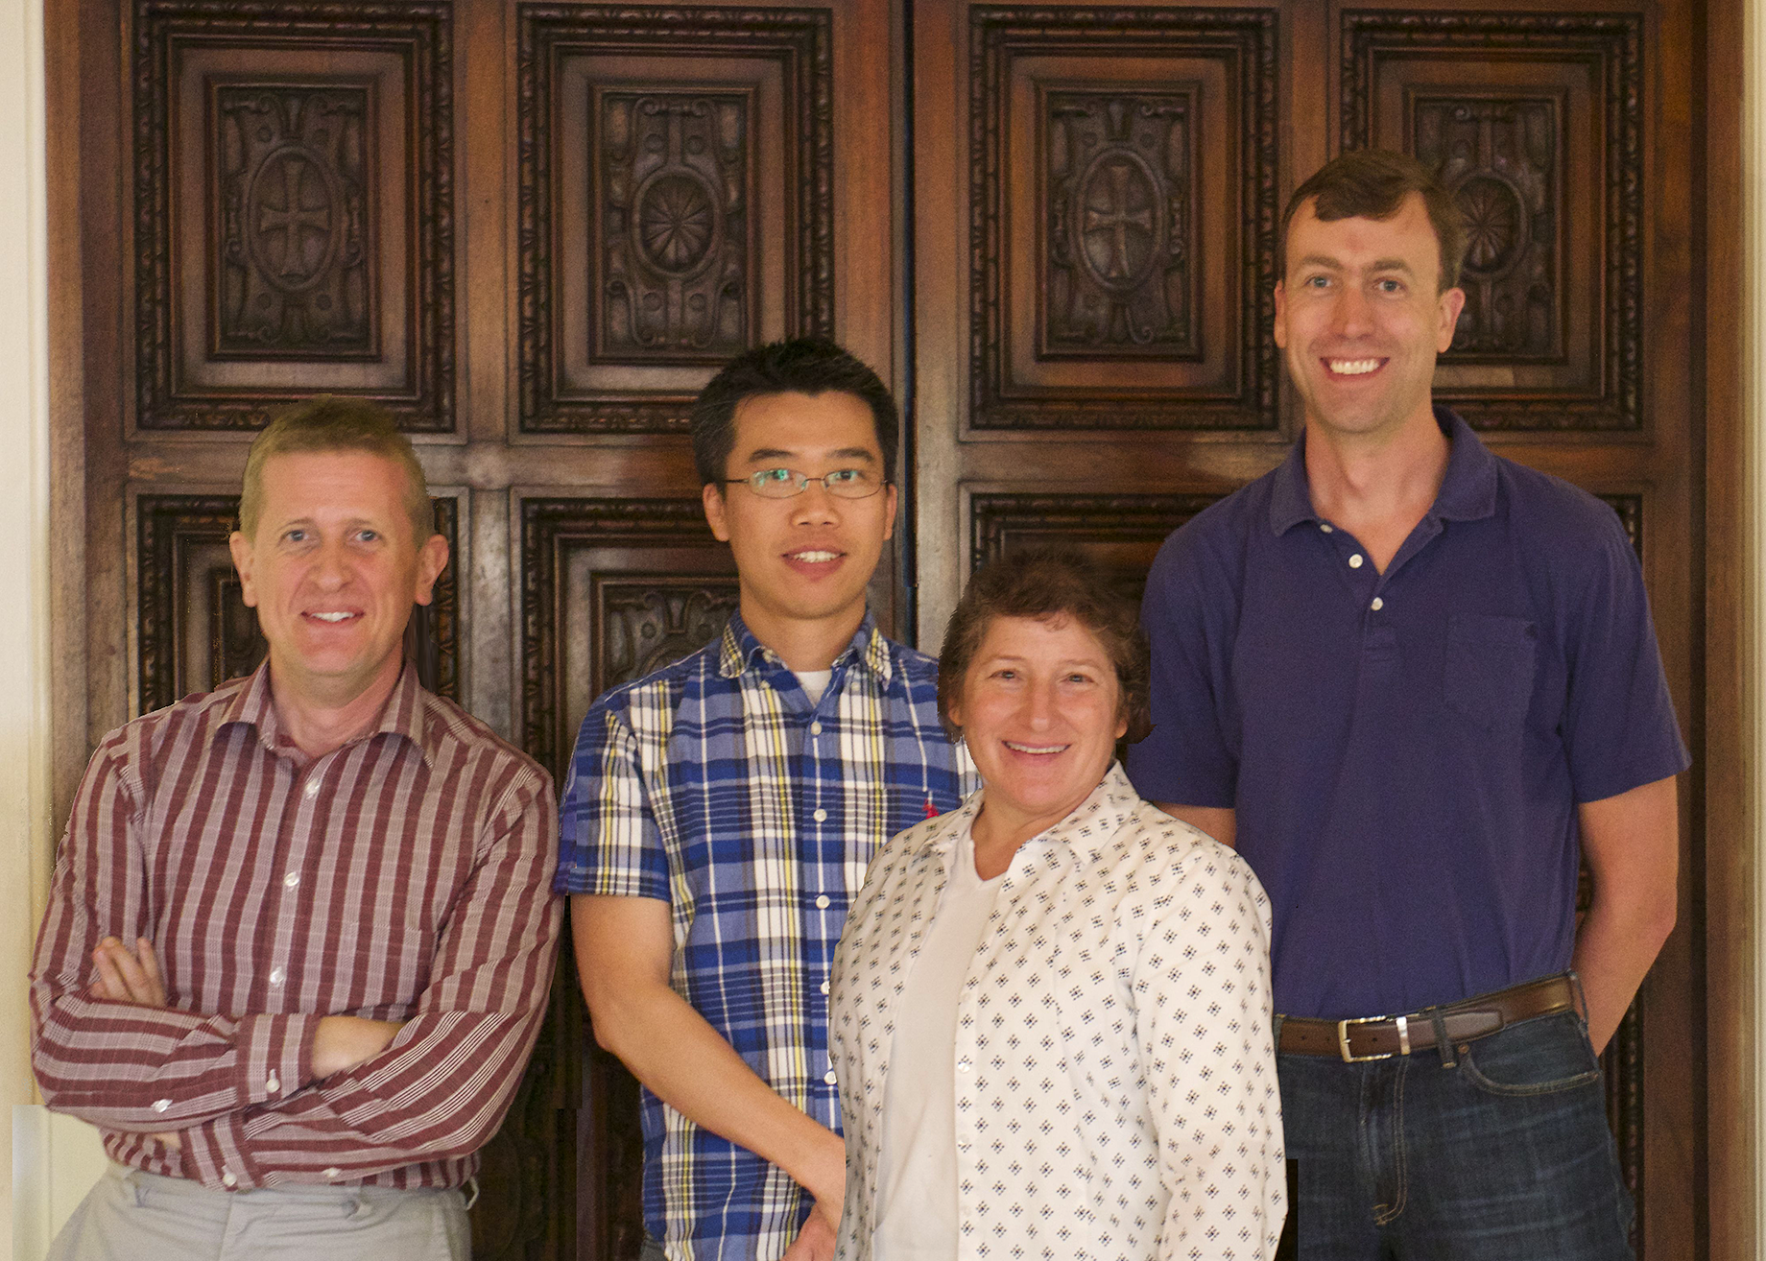 From left to right: Simon Jones, Jeremy Wei, Julie Kornfield, and Jason Whaley